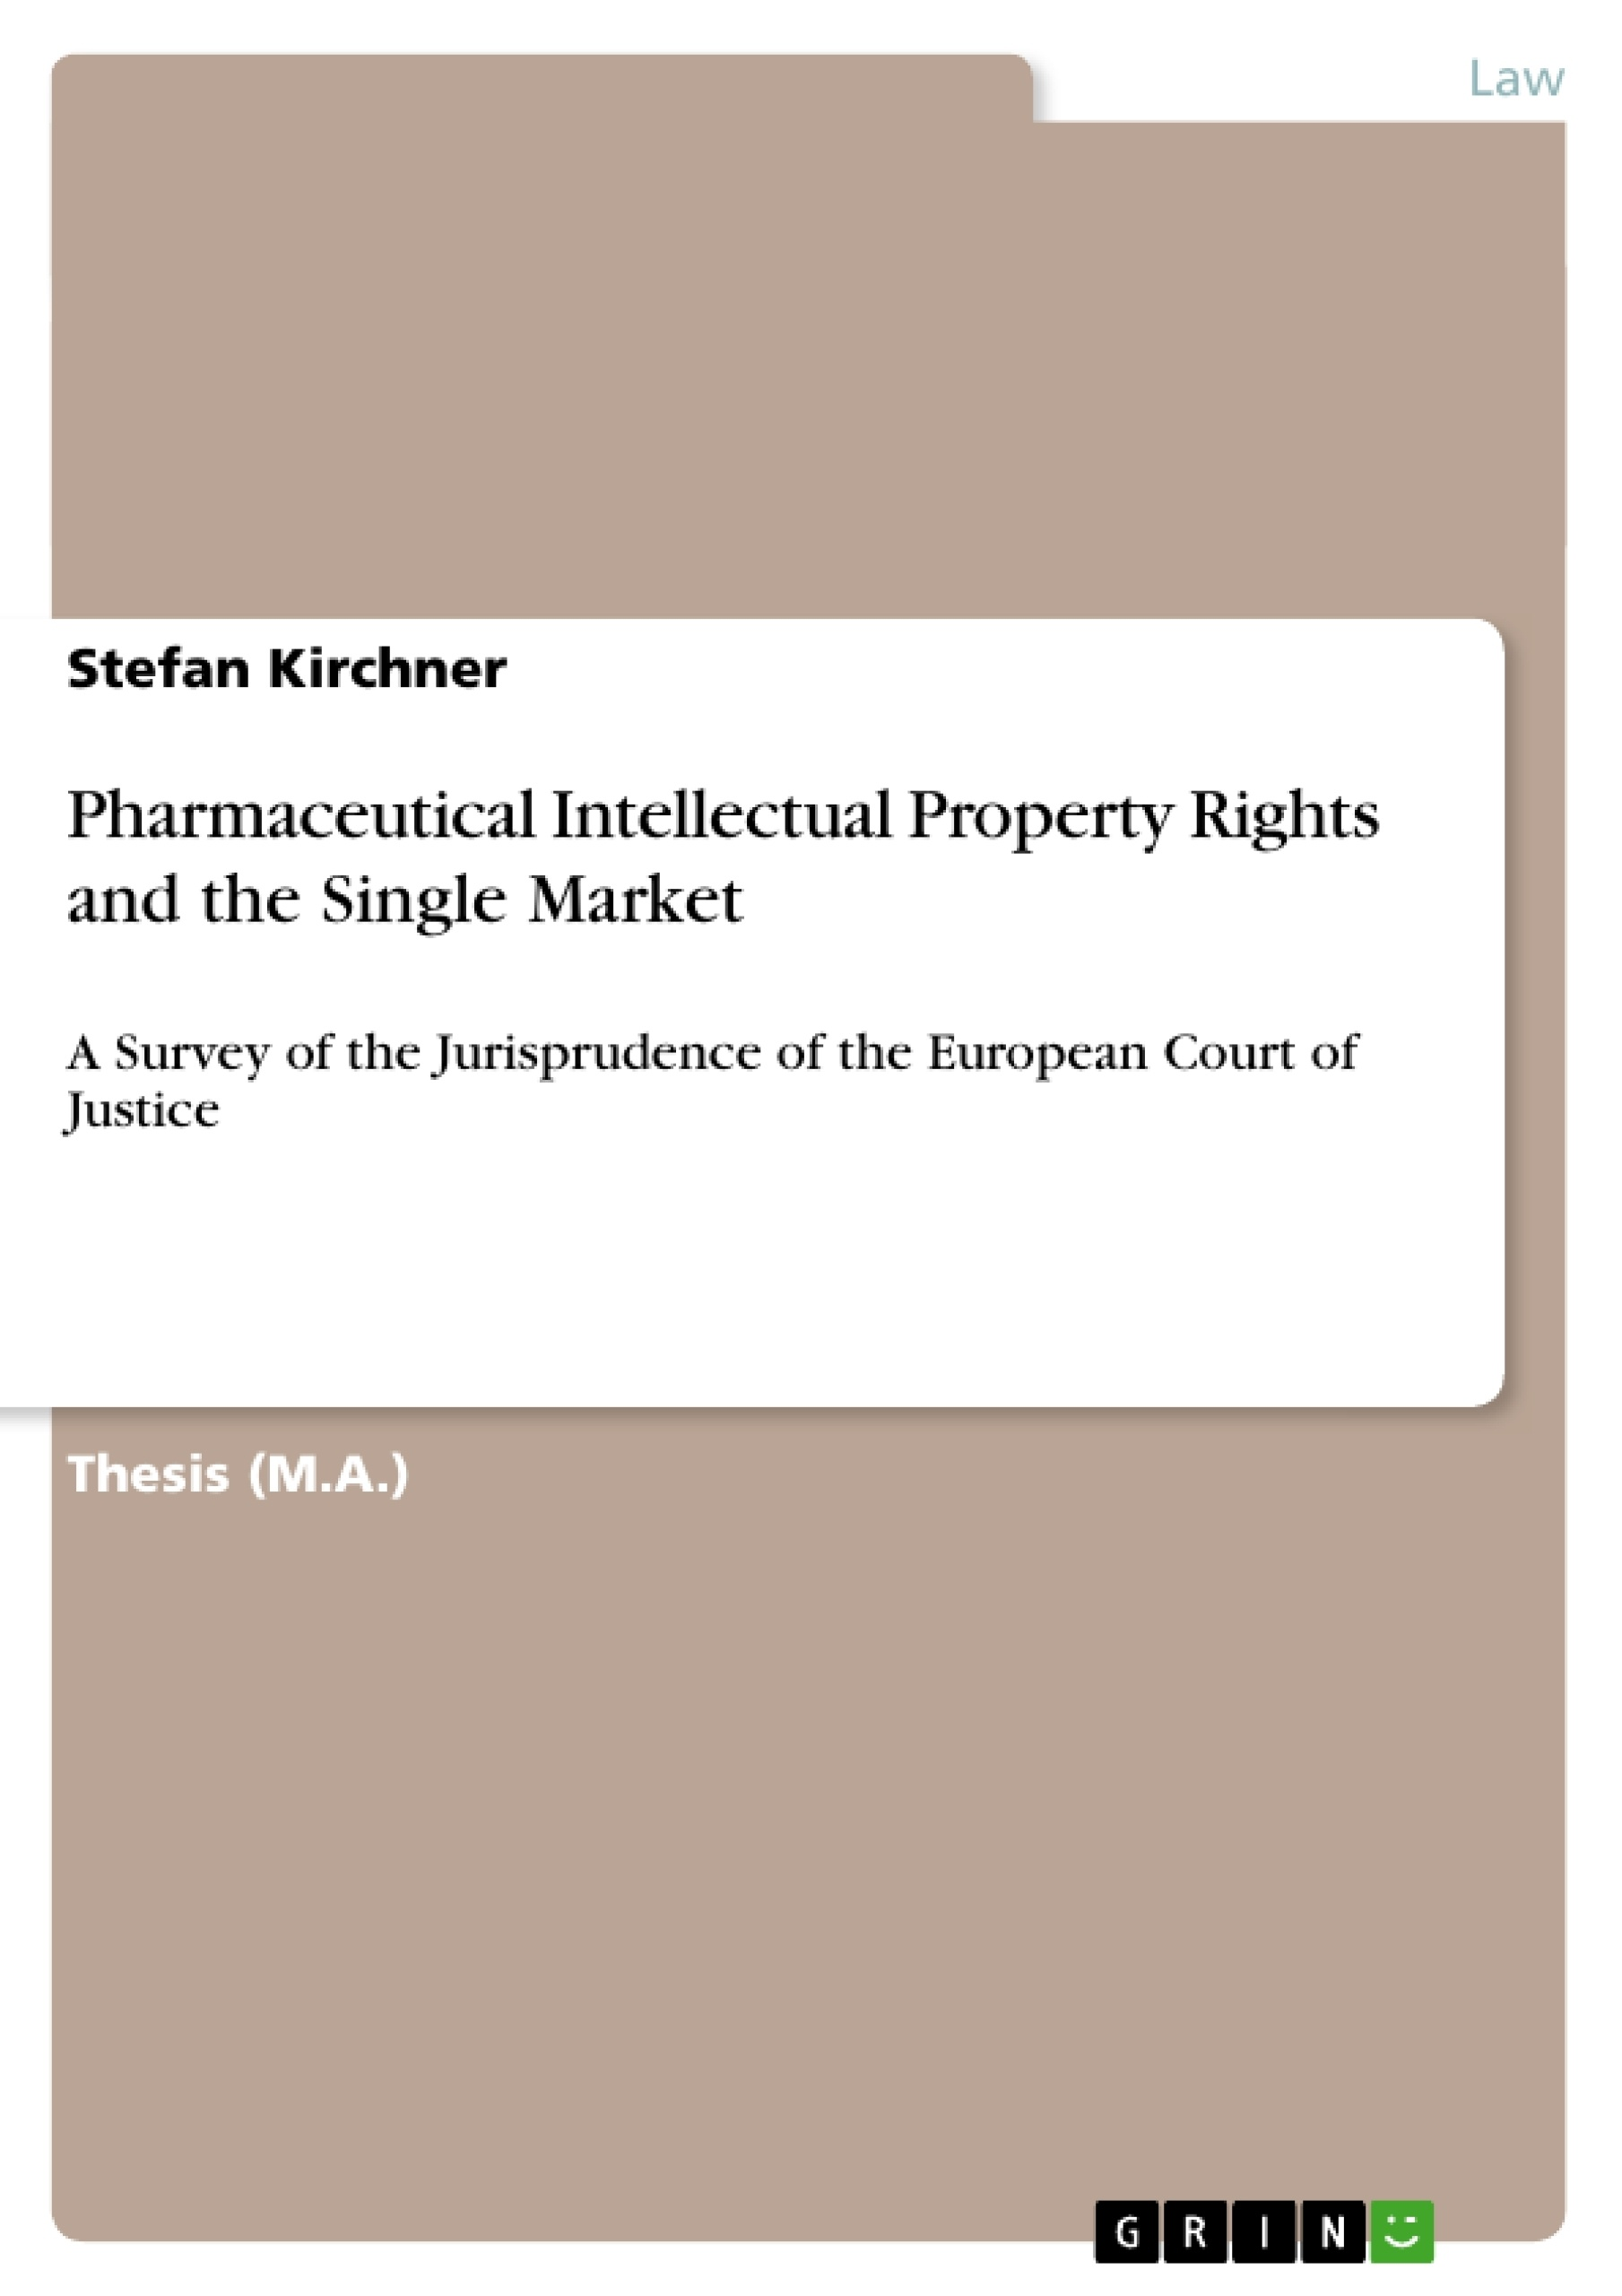 Title: Pharmaceutical Intellectual Property Rights and the Single Market